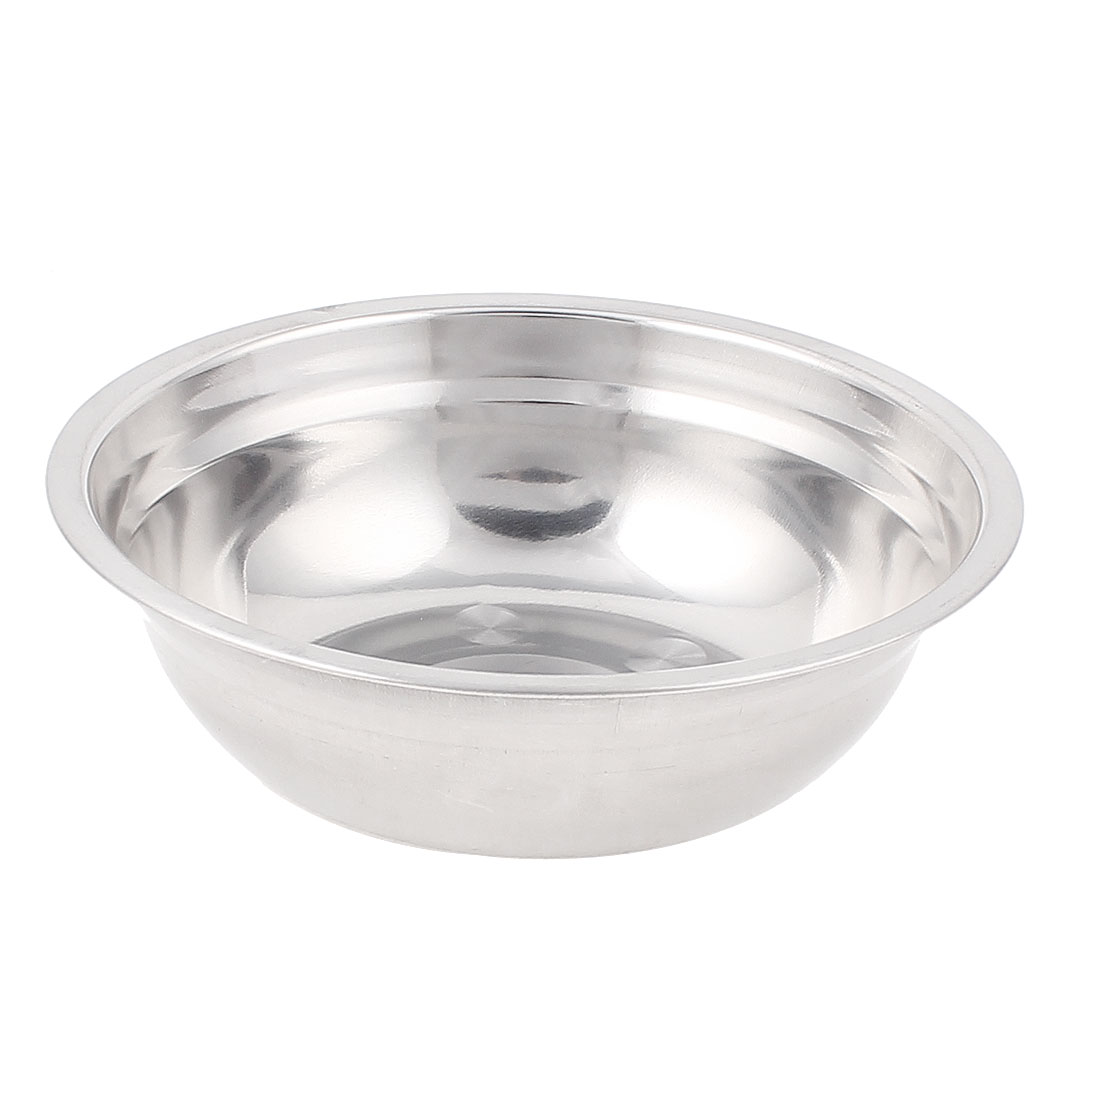 16 x 4.5cm(D x H) Stainless Steel Dish Bowl Tray Round Food Soup Serving Kitchen